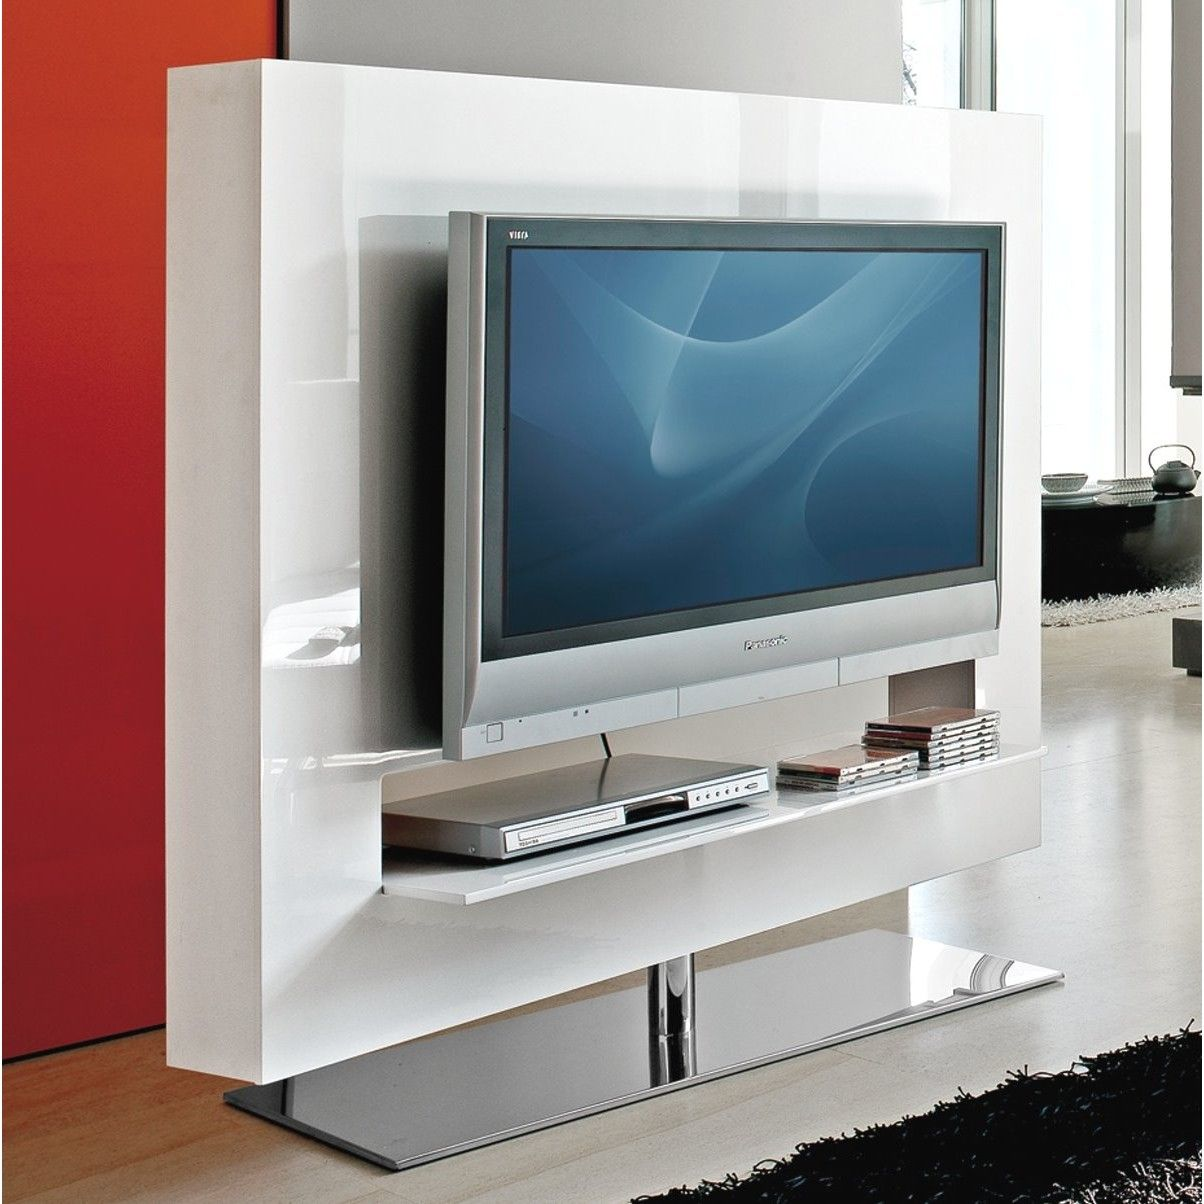 genial tv m bel freistehend wohnen tv m bel freistehend tv m bel mit r ckwand und tv m bel. Black Bedroom Furniture Sets. Home Design Ideas